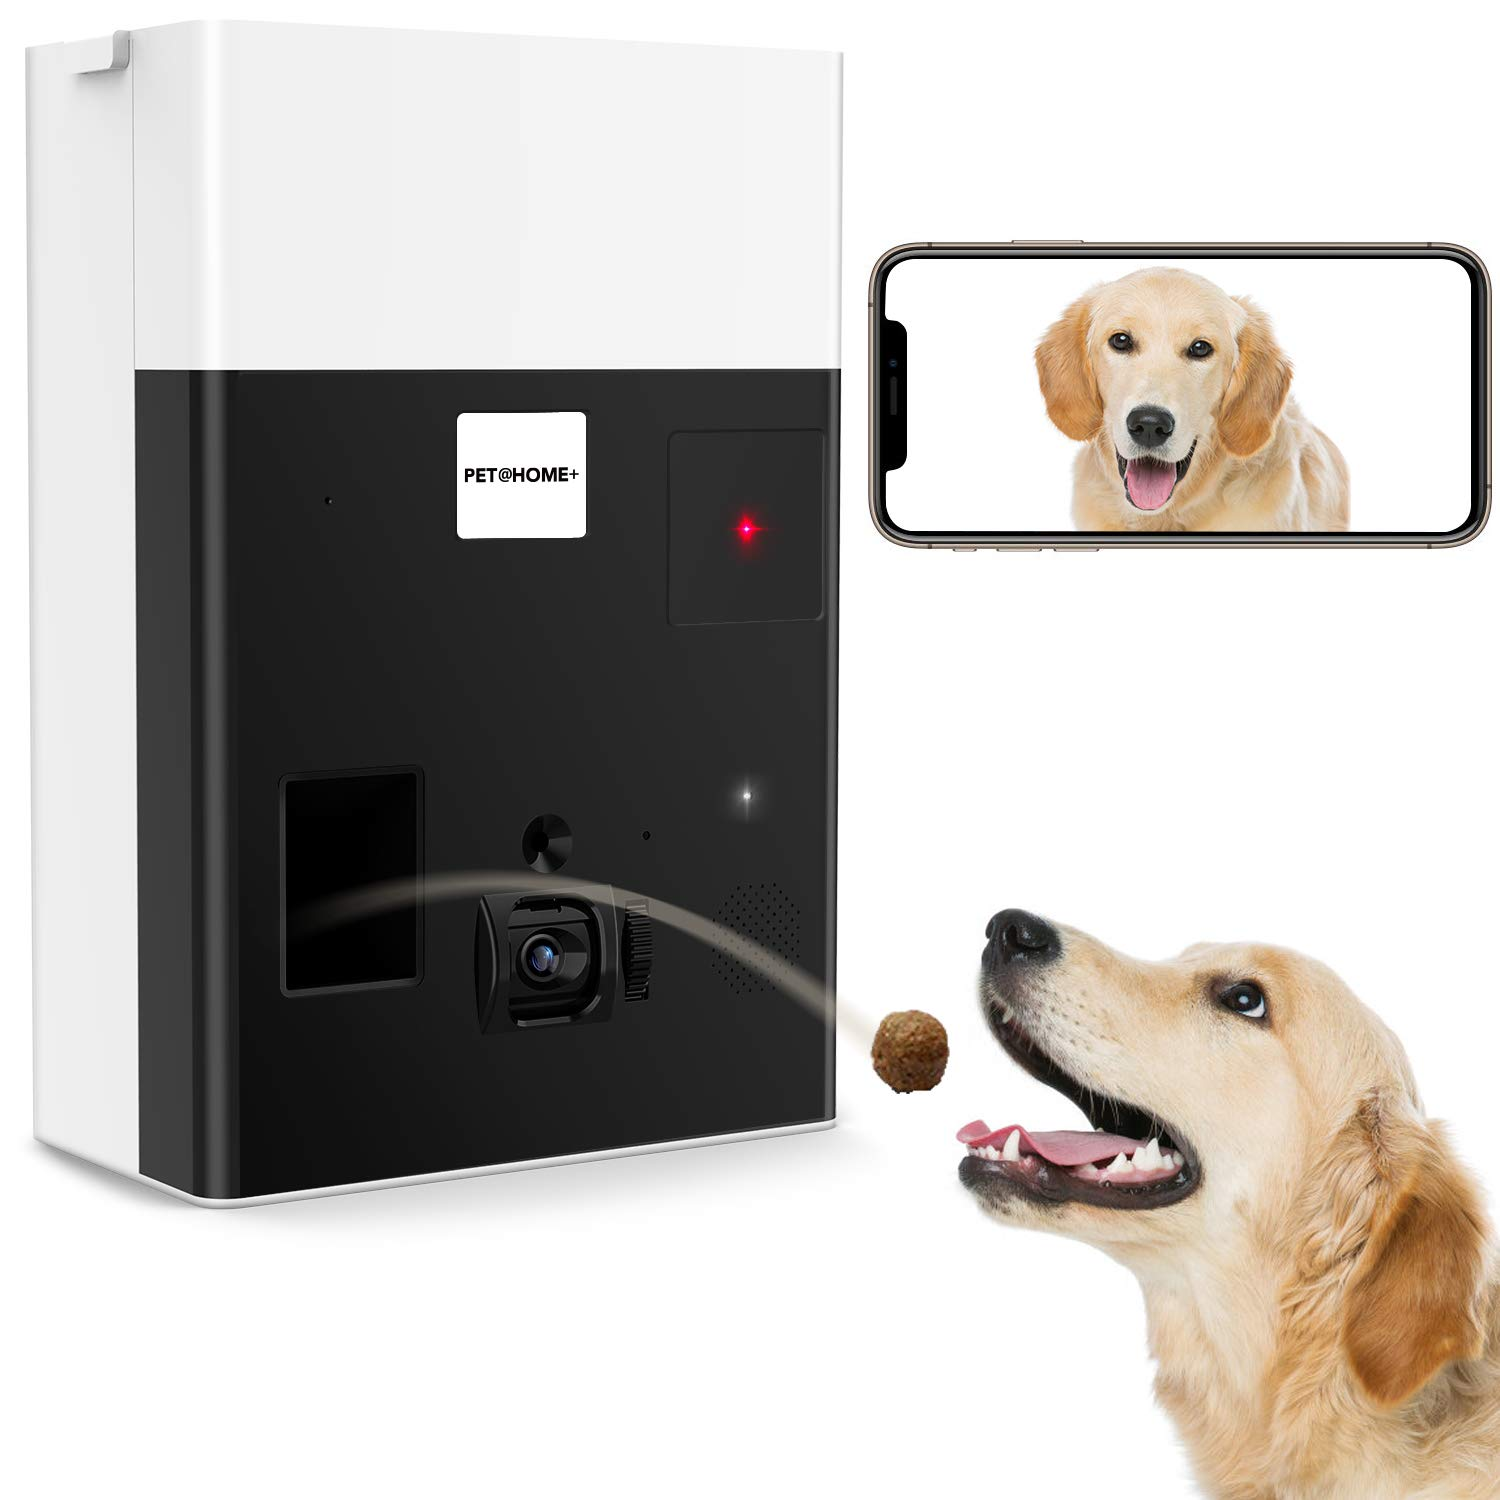 iPATROL Interactive Laser Toy & Dog Camera, Alexa Enabled Treat Dispenser with Thermometer & Cloud Recording, Through The APP (New-Second Generation) Customer Support: cs@ipatrol.net or 855.533.3999